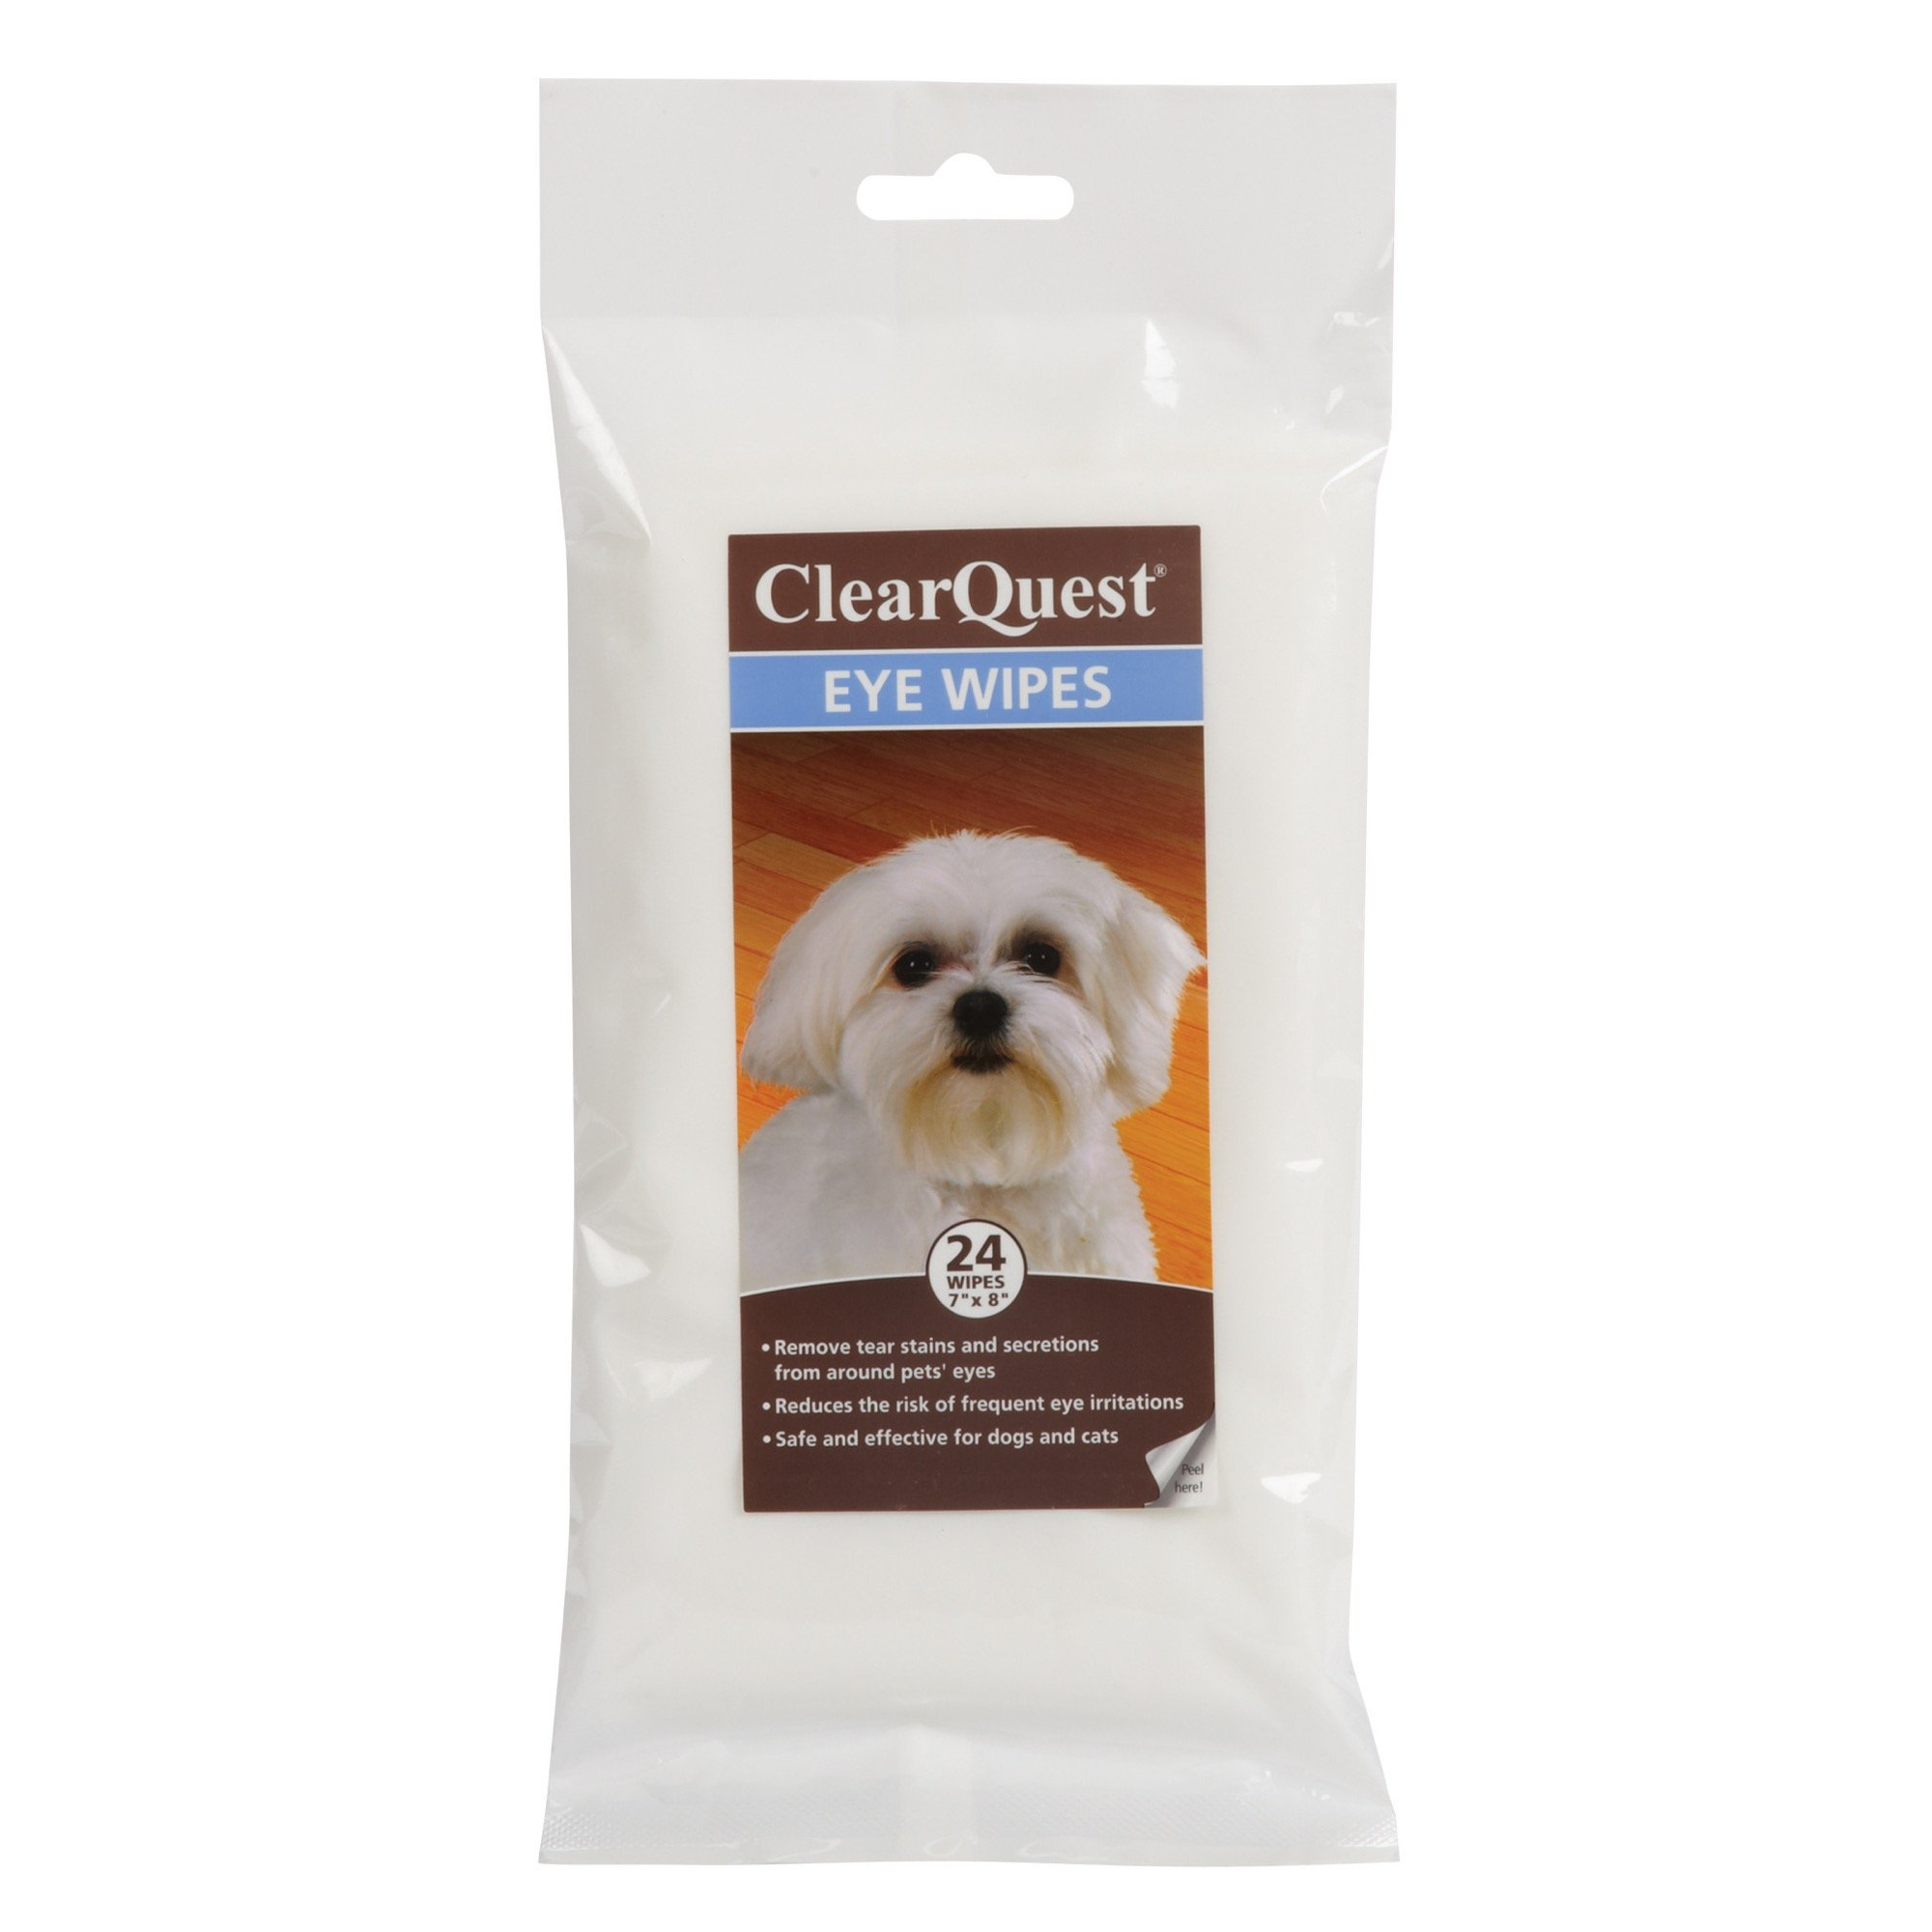 ClearQuest Eye Wipes — Easy-to-Use Wipes that Gently Remove Tear Stains and Secretions from Around Dogs' and Cats' Eyes, 24-Pack